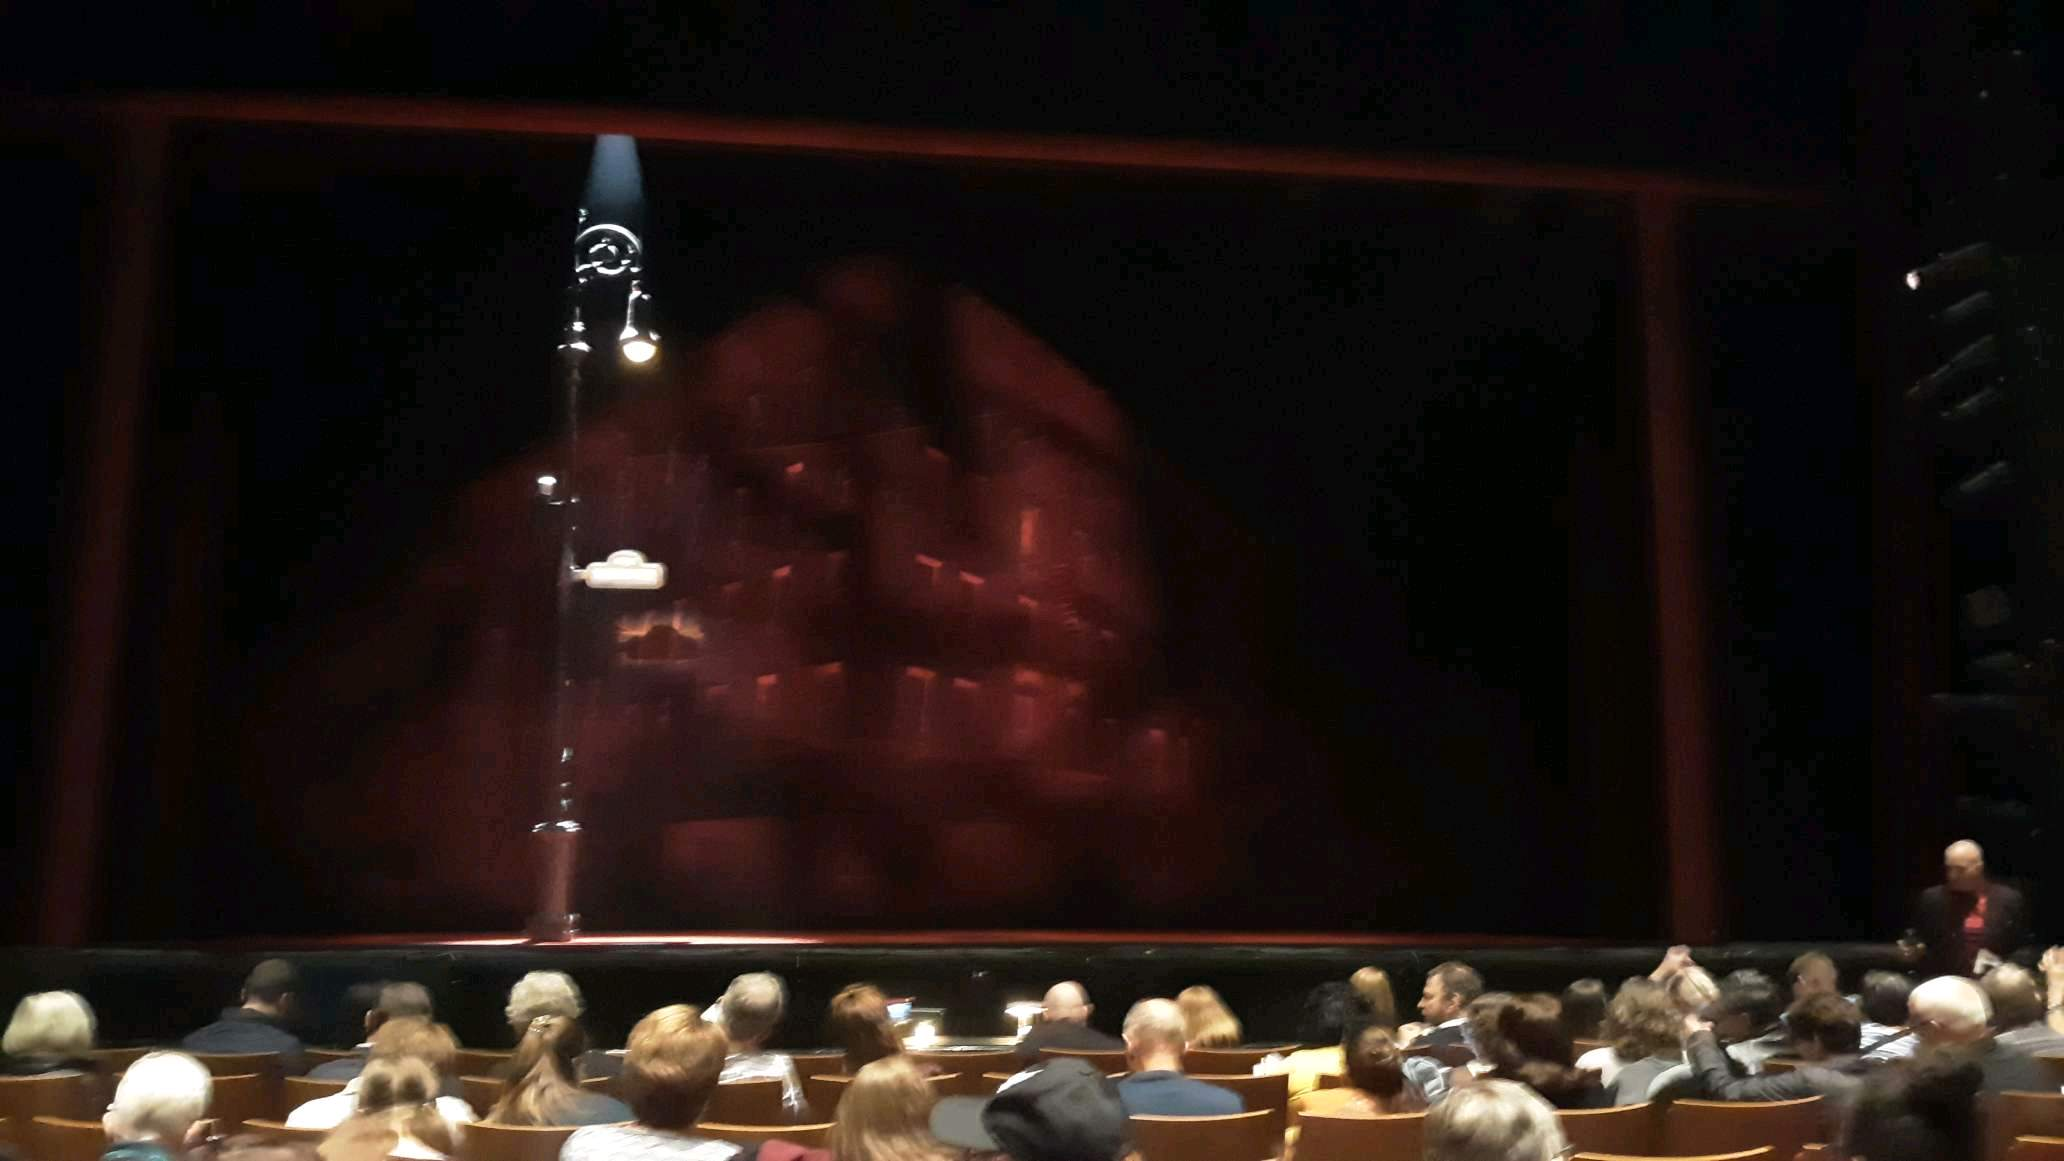 Durham Performing Arts Center Section Orchestra 3 Row H Seat 111